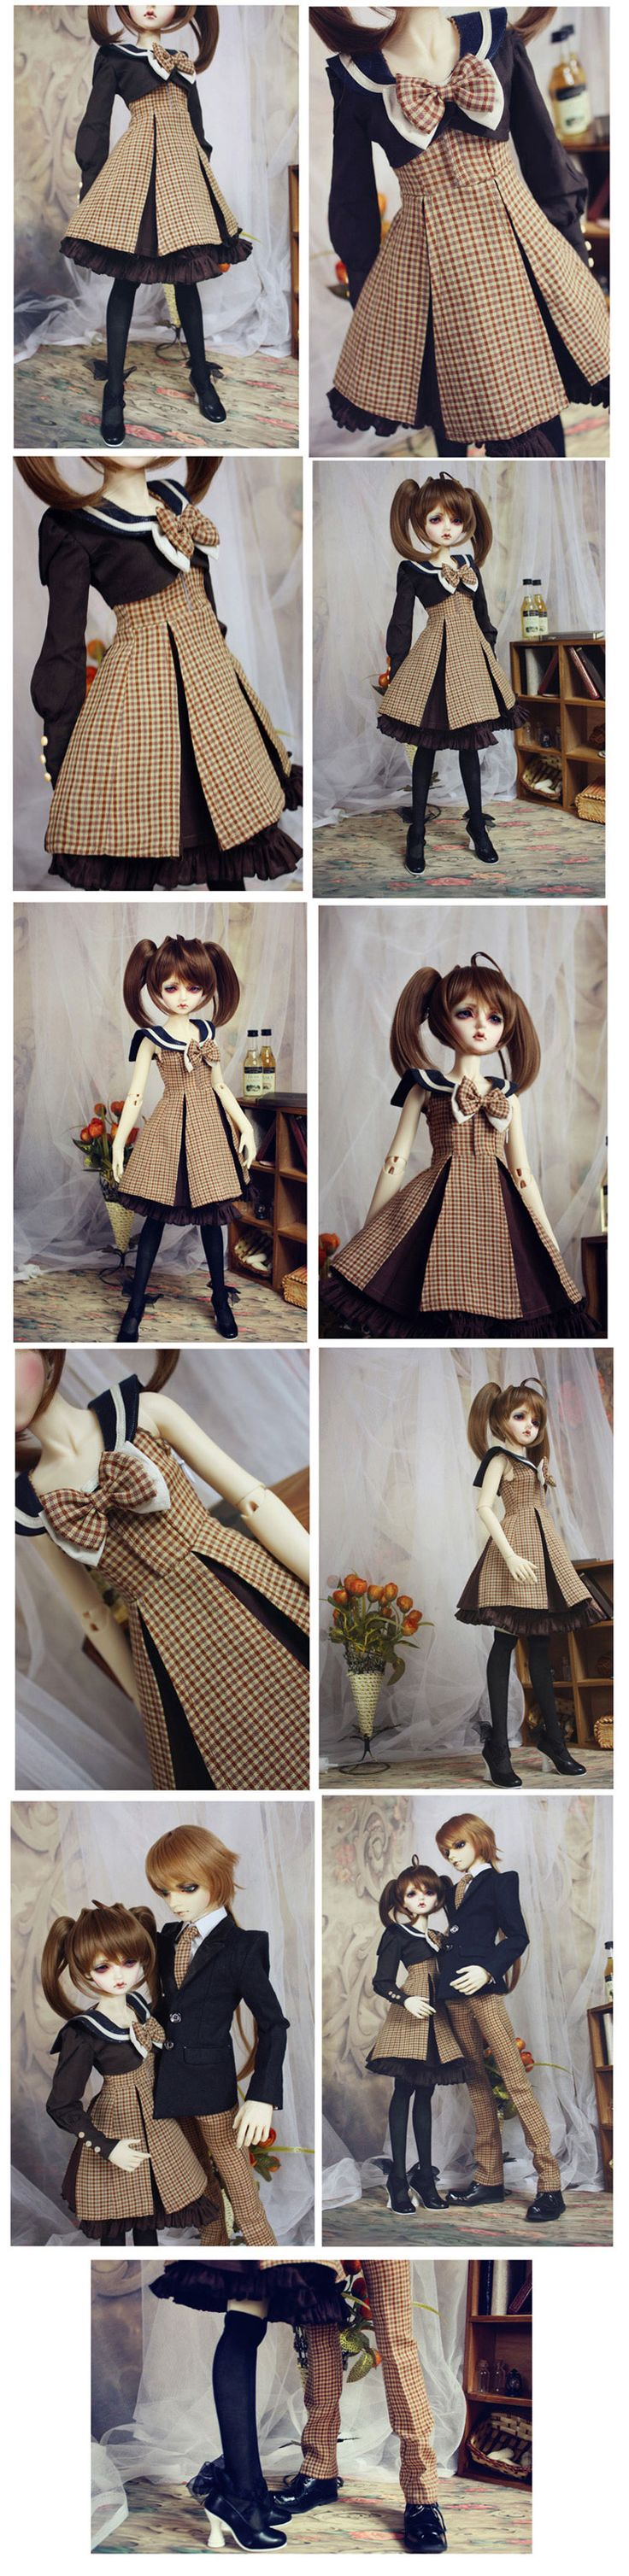 Bjd Clothes Students uniform for MSD/SD10/SD13/SD16 Ball-jointed Doll_70cm DOLL_70cm DOLL_CLOTHING_Ball Jointed Dolls (BJD) company-Legenddoll